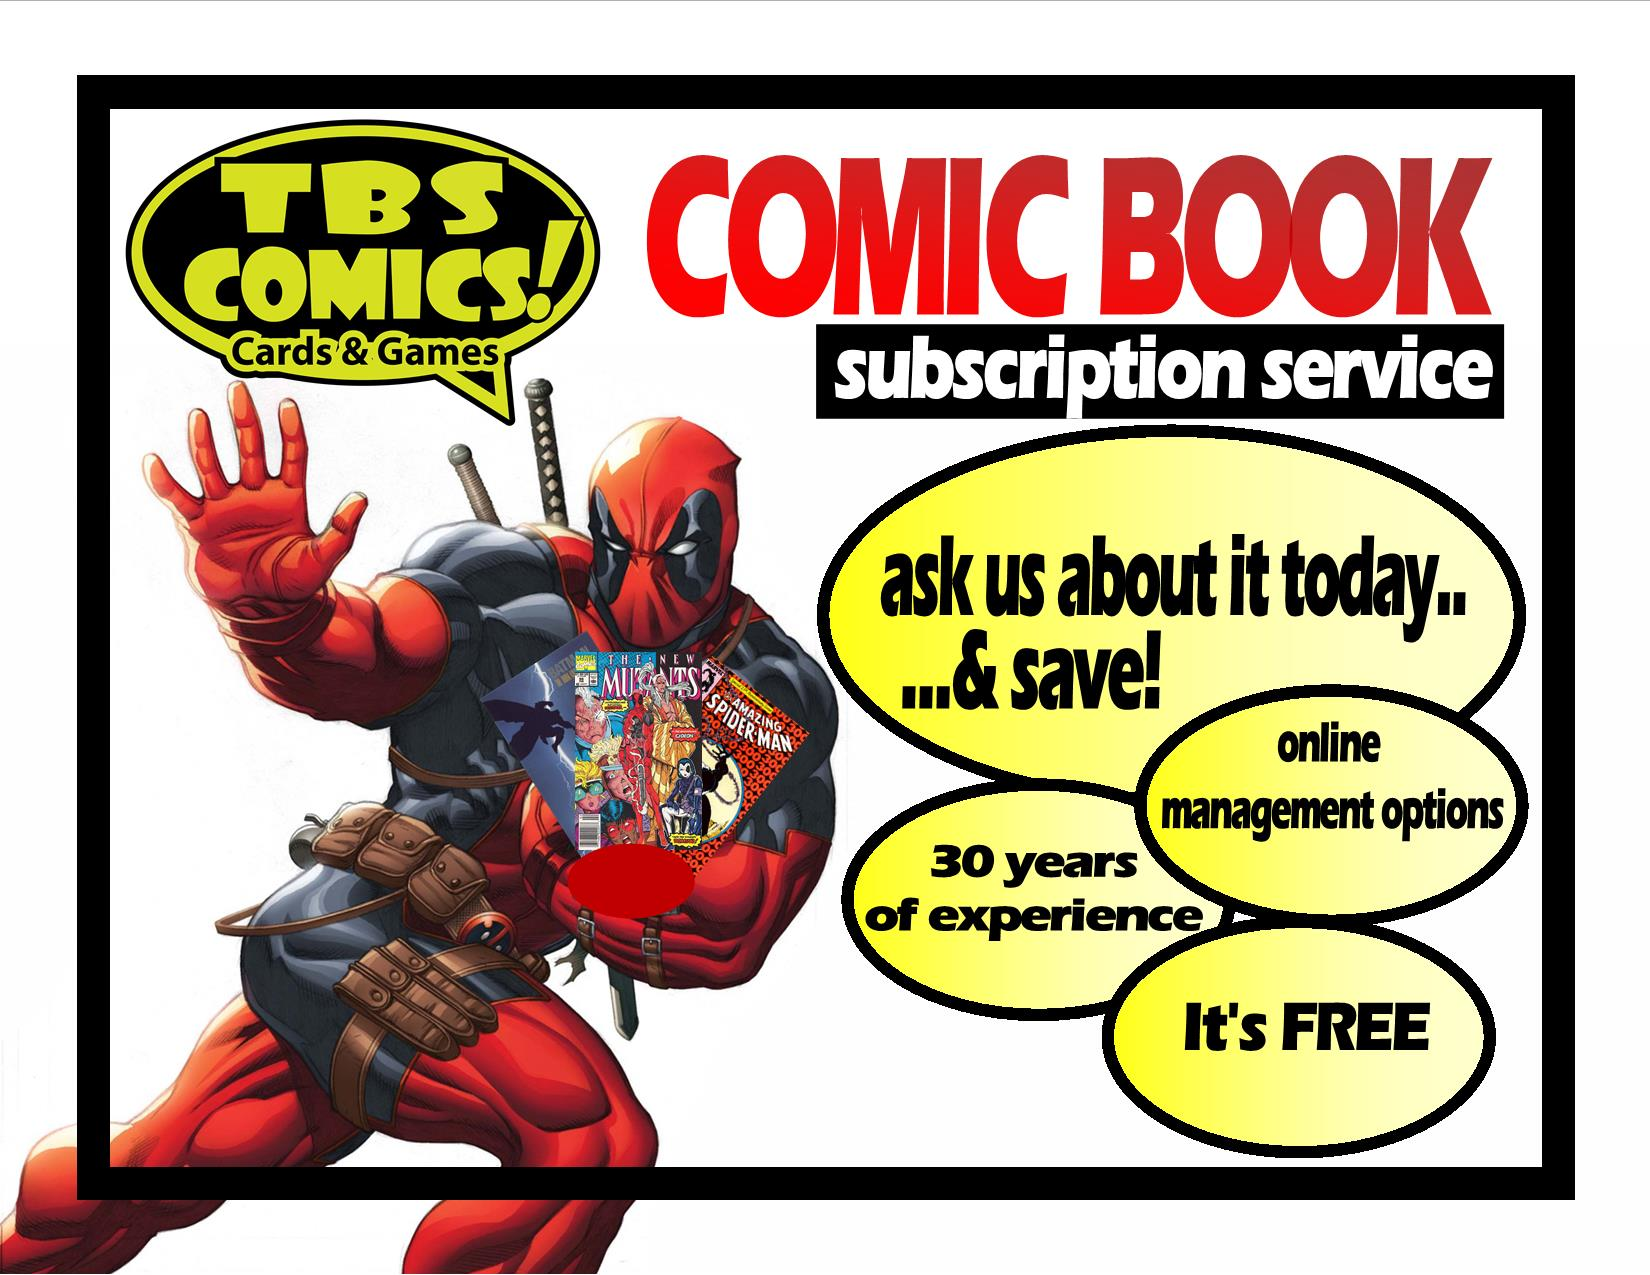 comic-book-subscription-service1